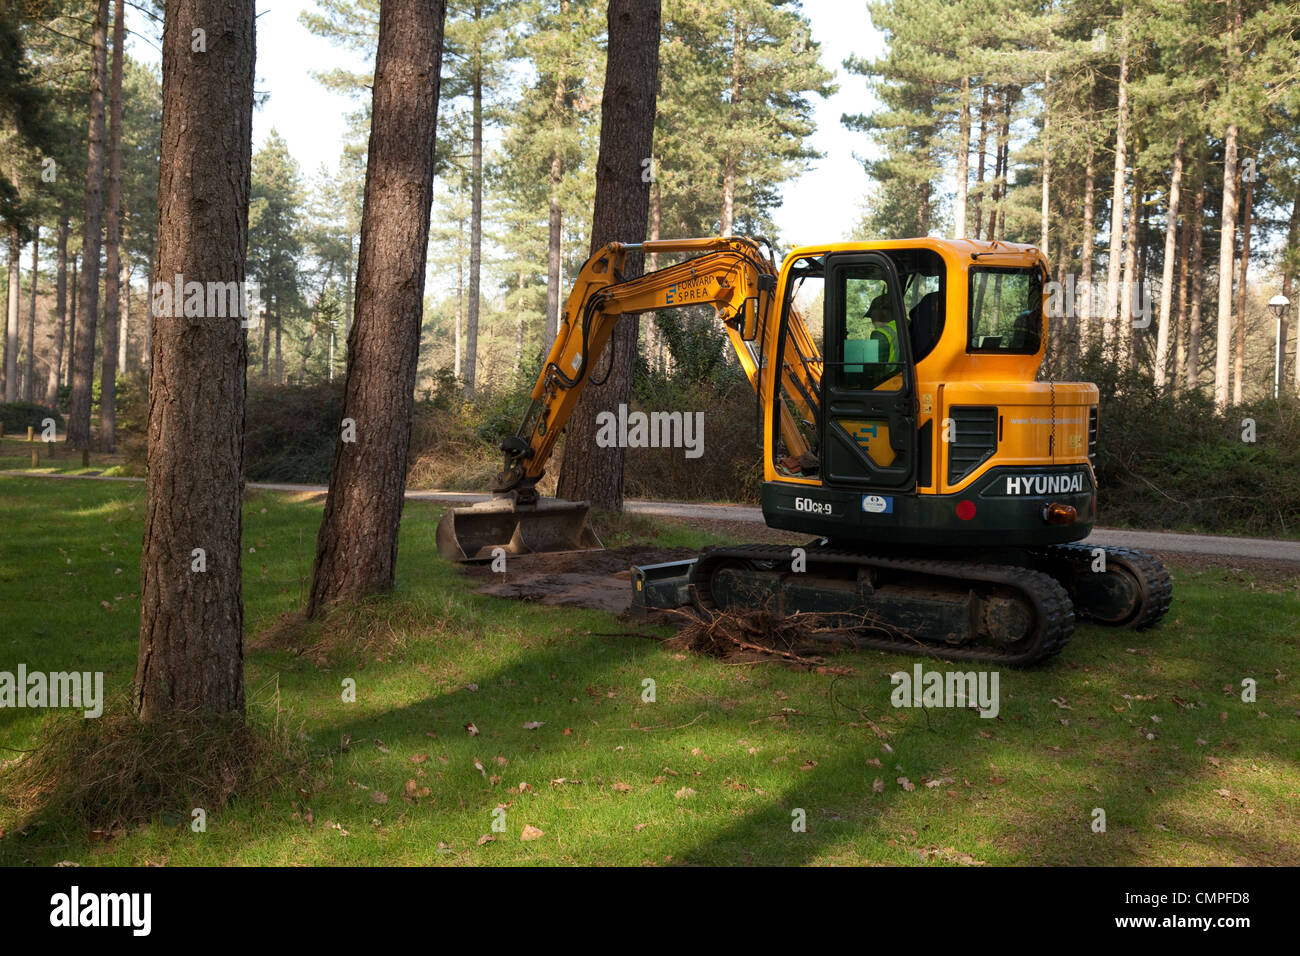 Machinery used for land management and forestry by Forestry Commission, Thetford Forest, Norfolk UK - Stock Image